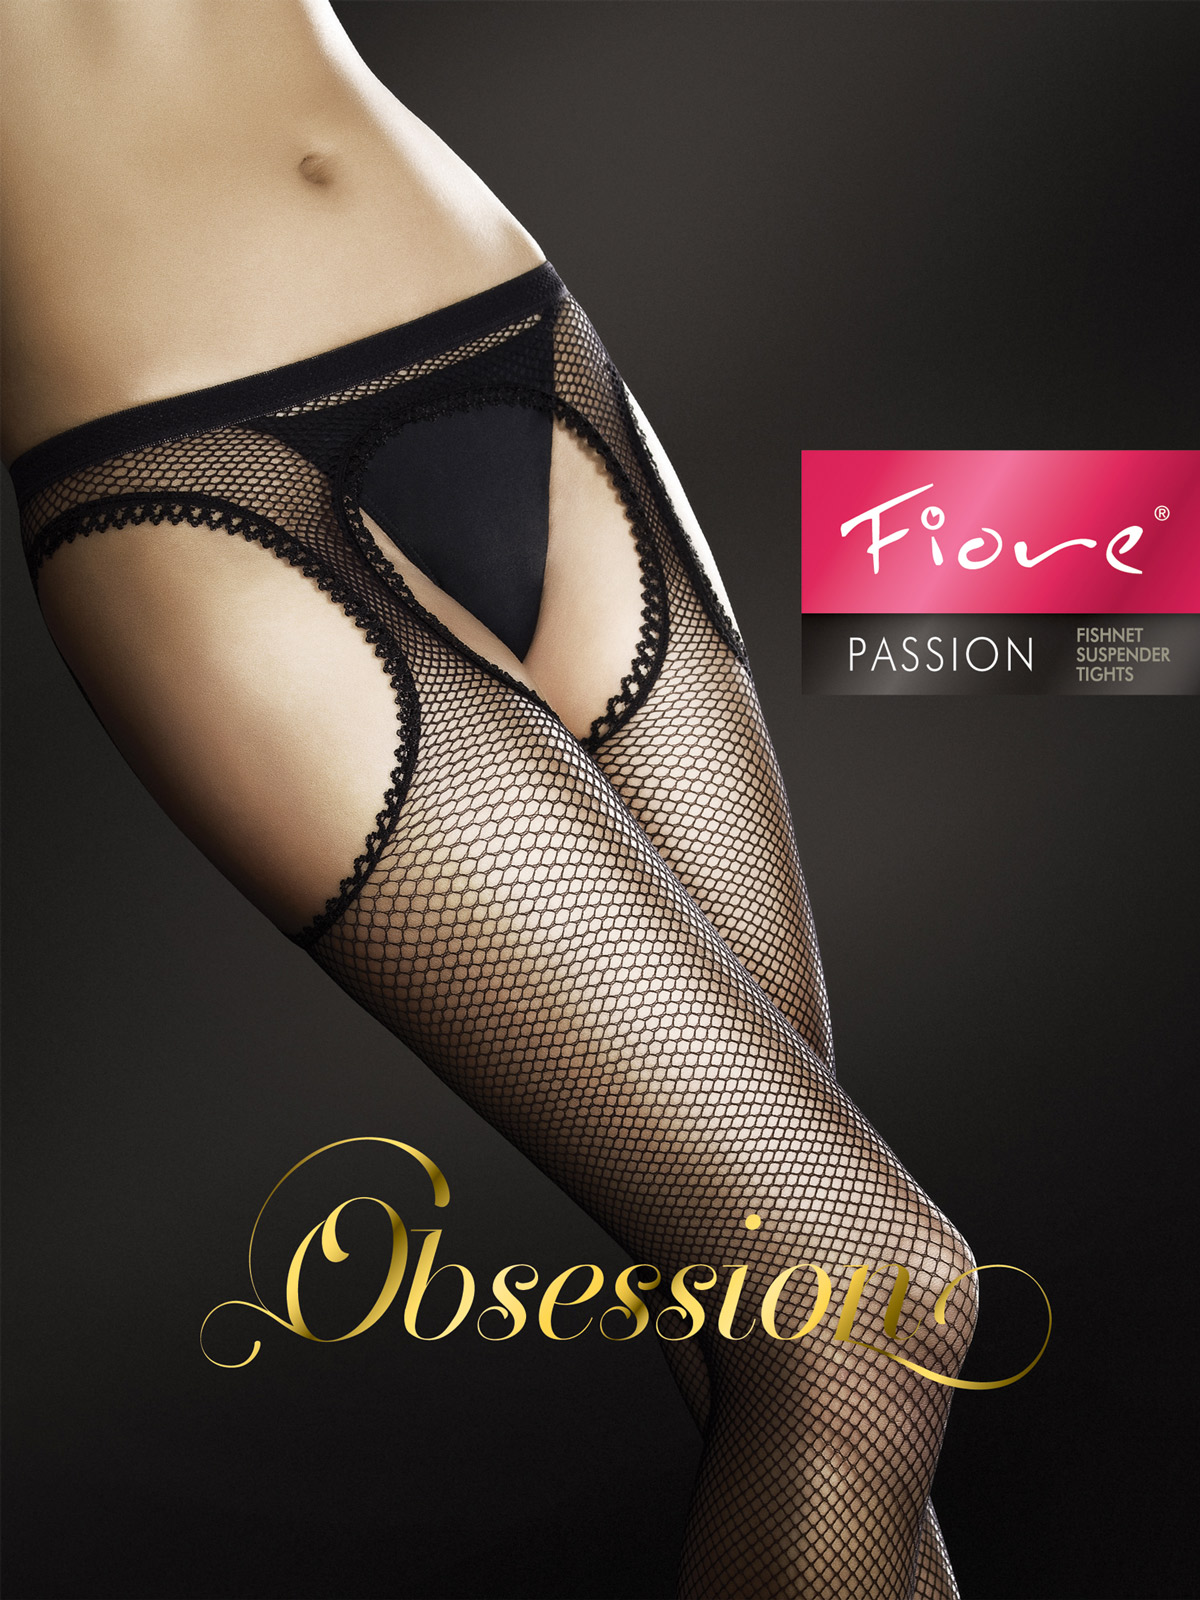 Fiore - Fishnet Suspender Tights Passion White